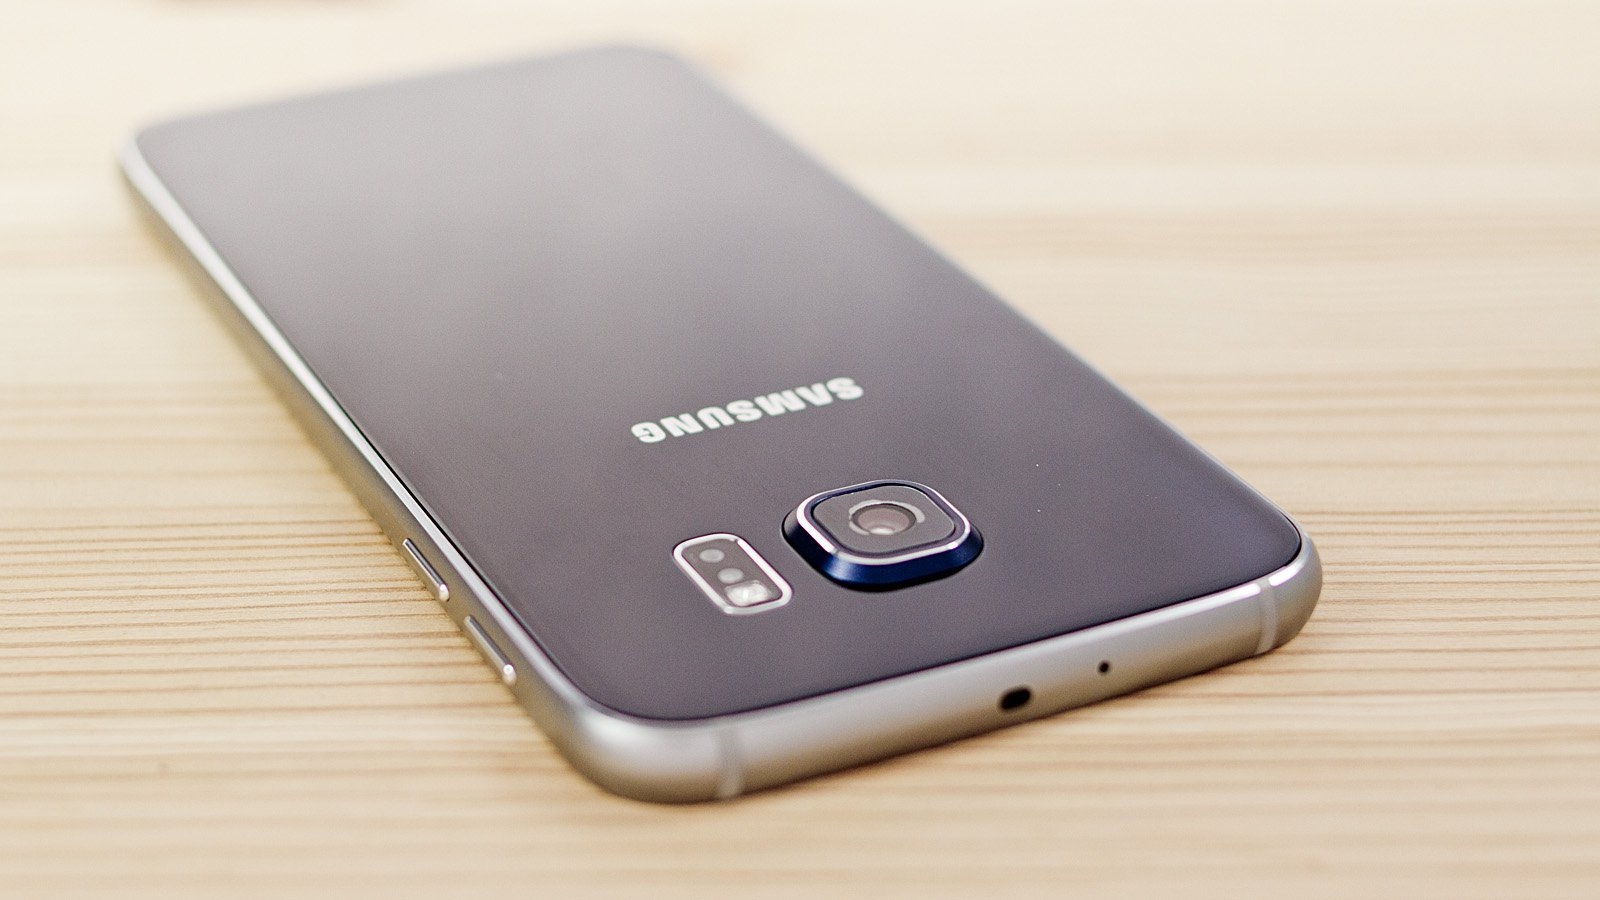 Alleged Samsung Galaxy S7 Pictures Leaked - BeginnersTech